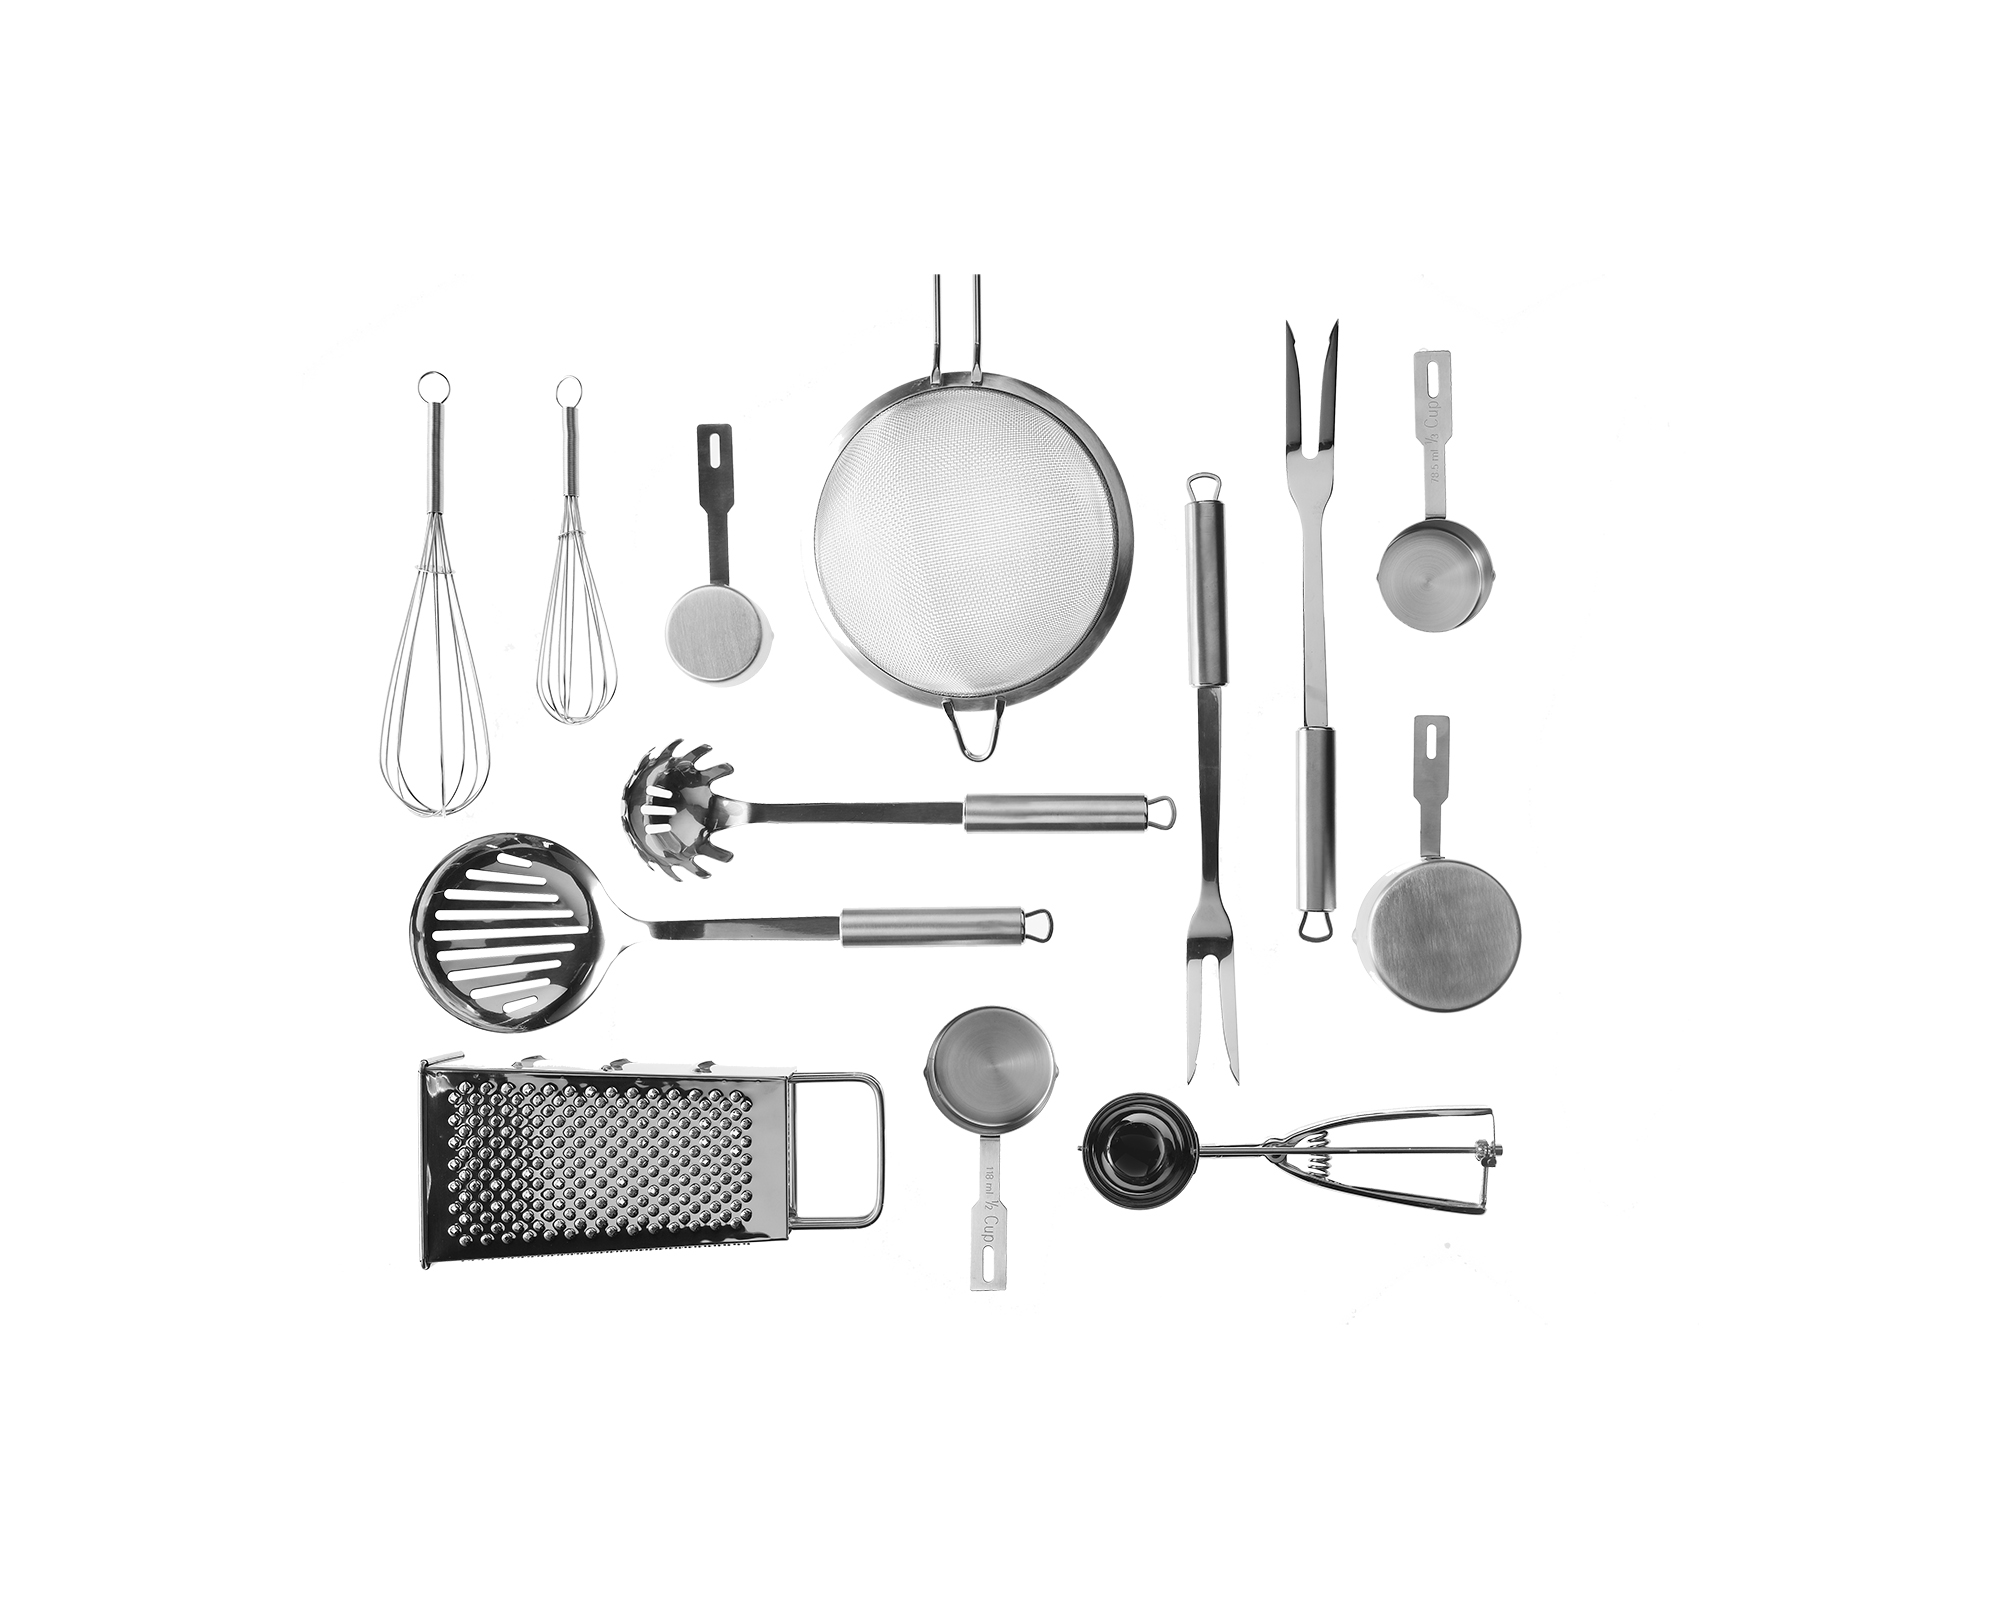 Collage of kitchen tools